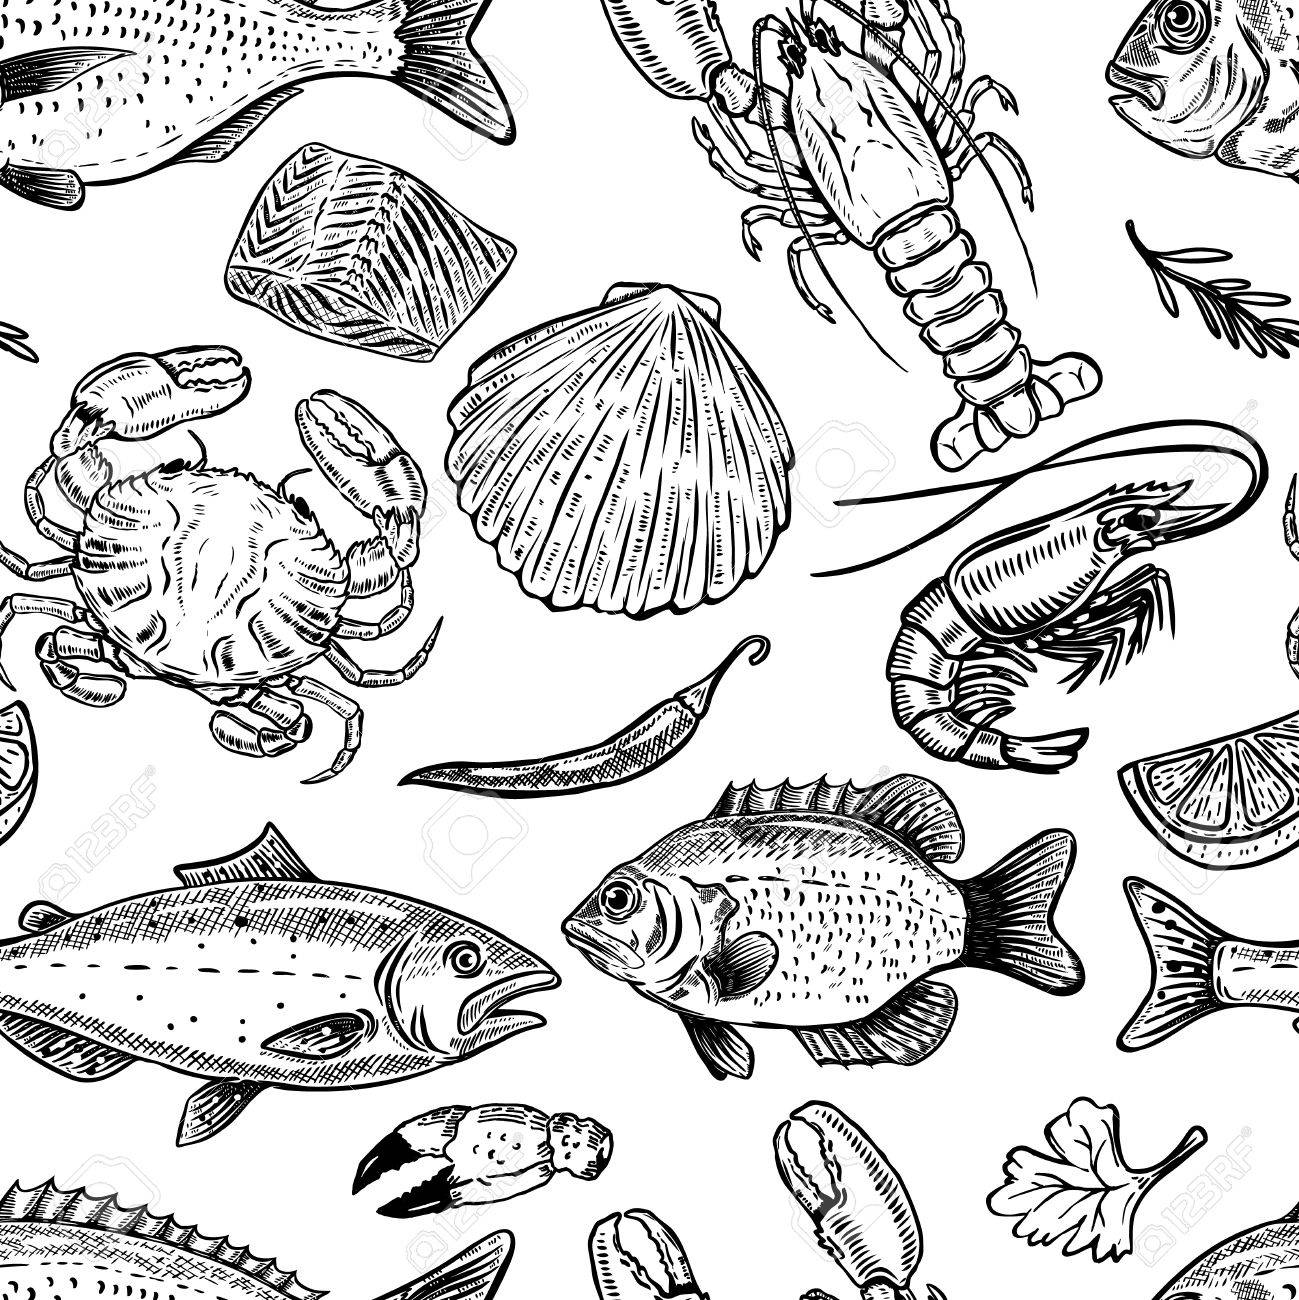 Seafood hand drawn seamless pattern. Design element for poster, wrapping paper. Vector illustration - 81715630